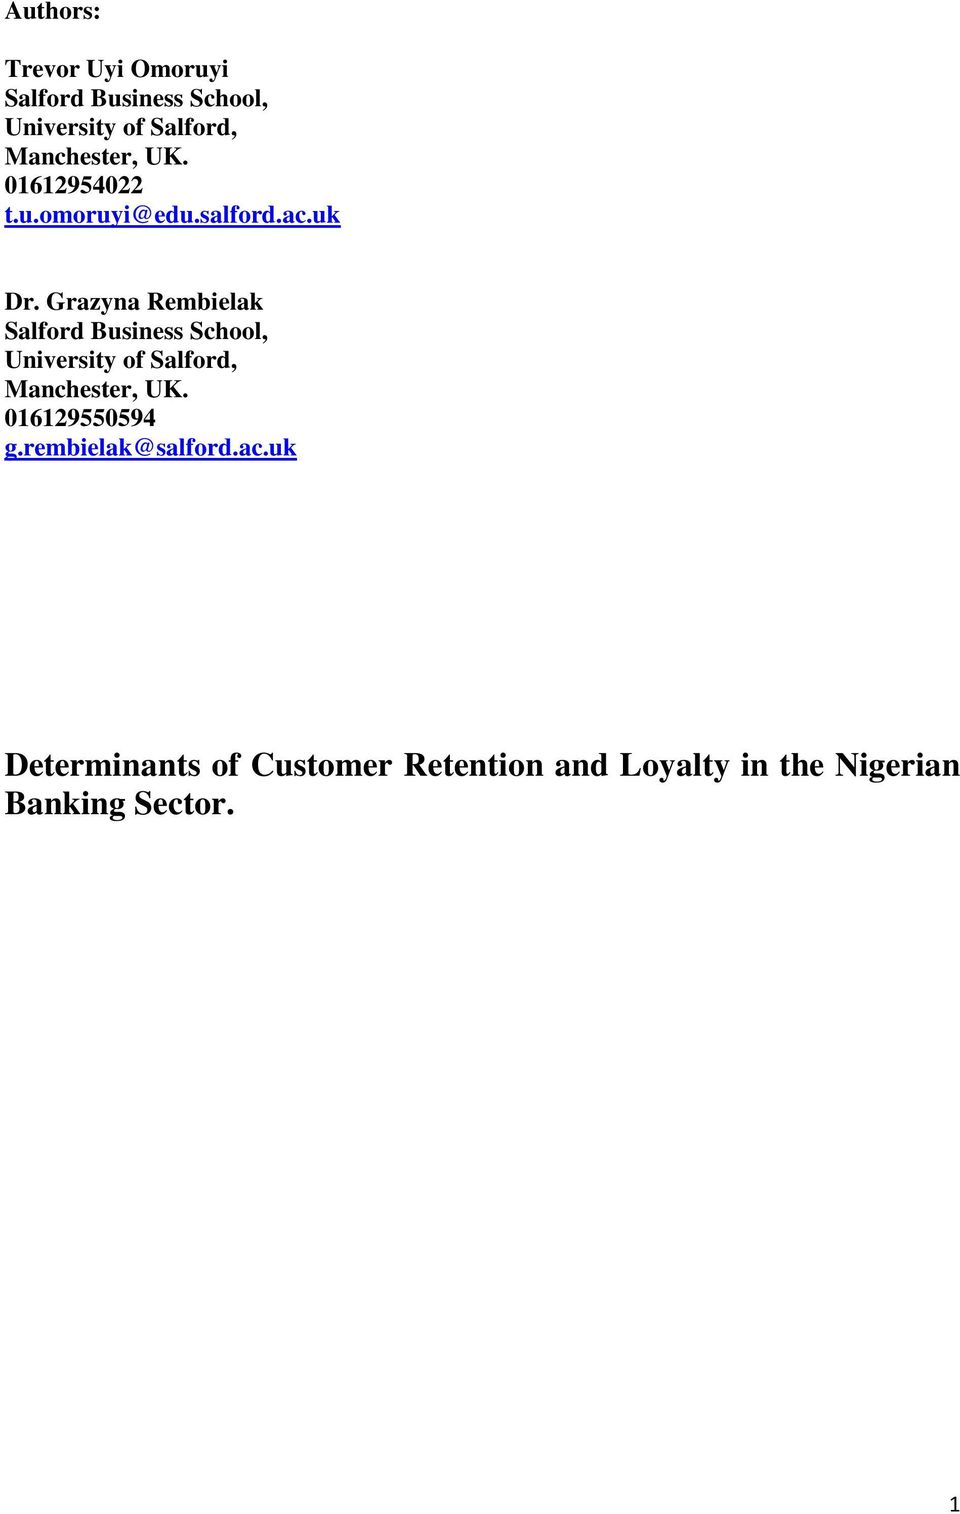 thesis report on crm in banking The impact of service quality on customer  new forms of banking channels such as  to evaluate the impact of service quality on customer loyalty among.